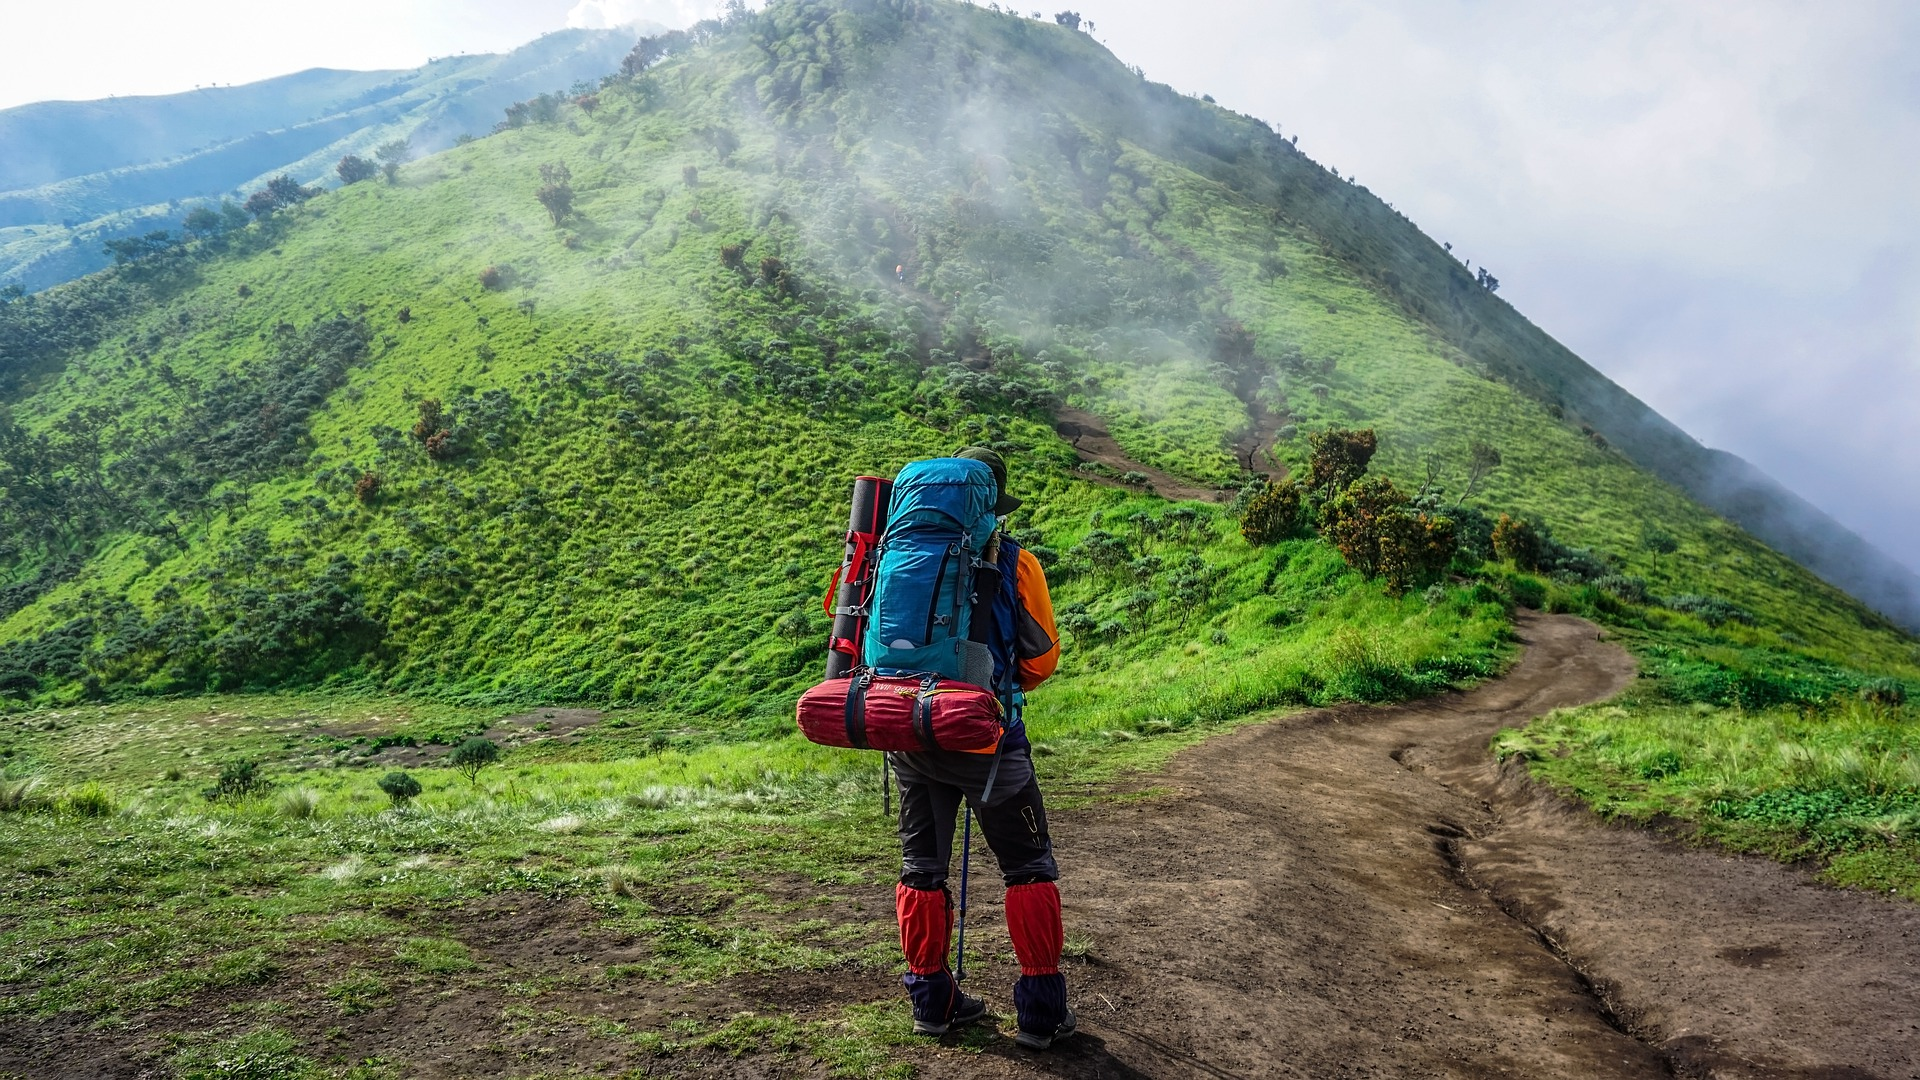 Invest in the most suitable backpack, rucksack, suitcase, travel, shoulder bag, backpacking, trek, hitchhike, nature, beauty, cheap flights, holidays, vacay, vacations, all-inclusive travel package